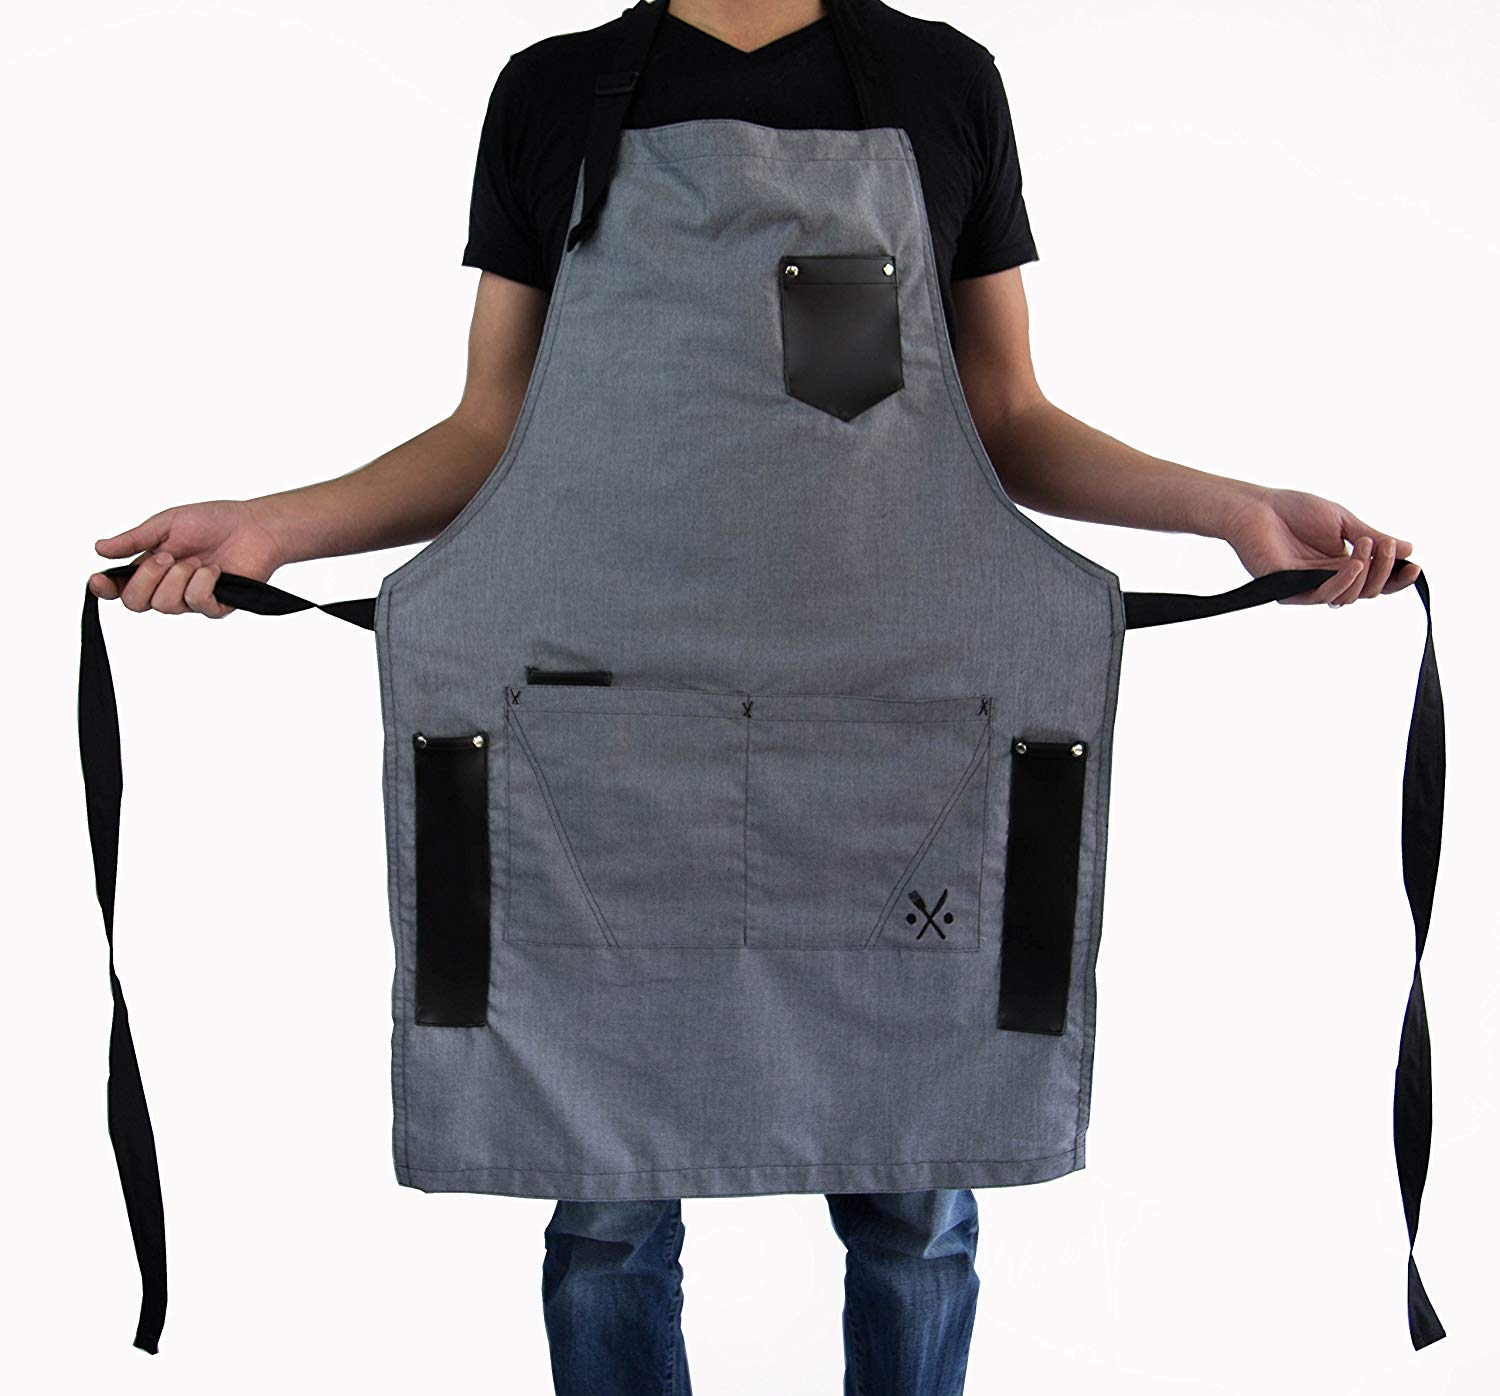 APRON for men chef, useful multifunctional pockets, ideal for bbq, grill, kitchen or restaurants, the coolest inexpensive gift for grilling dads, GREY